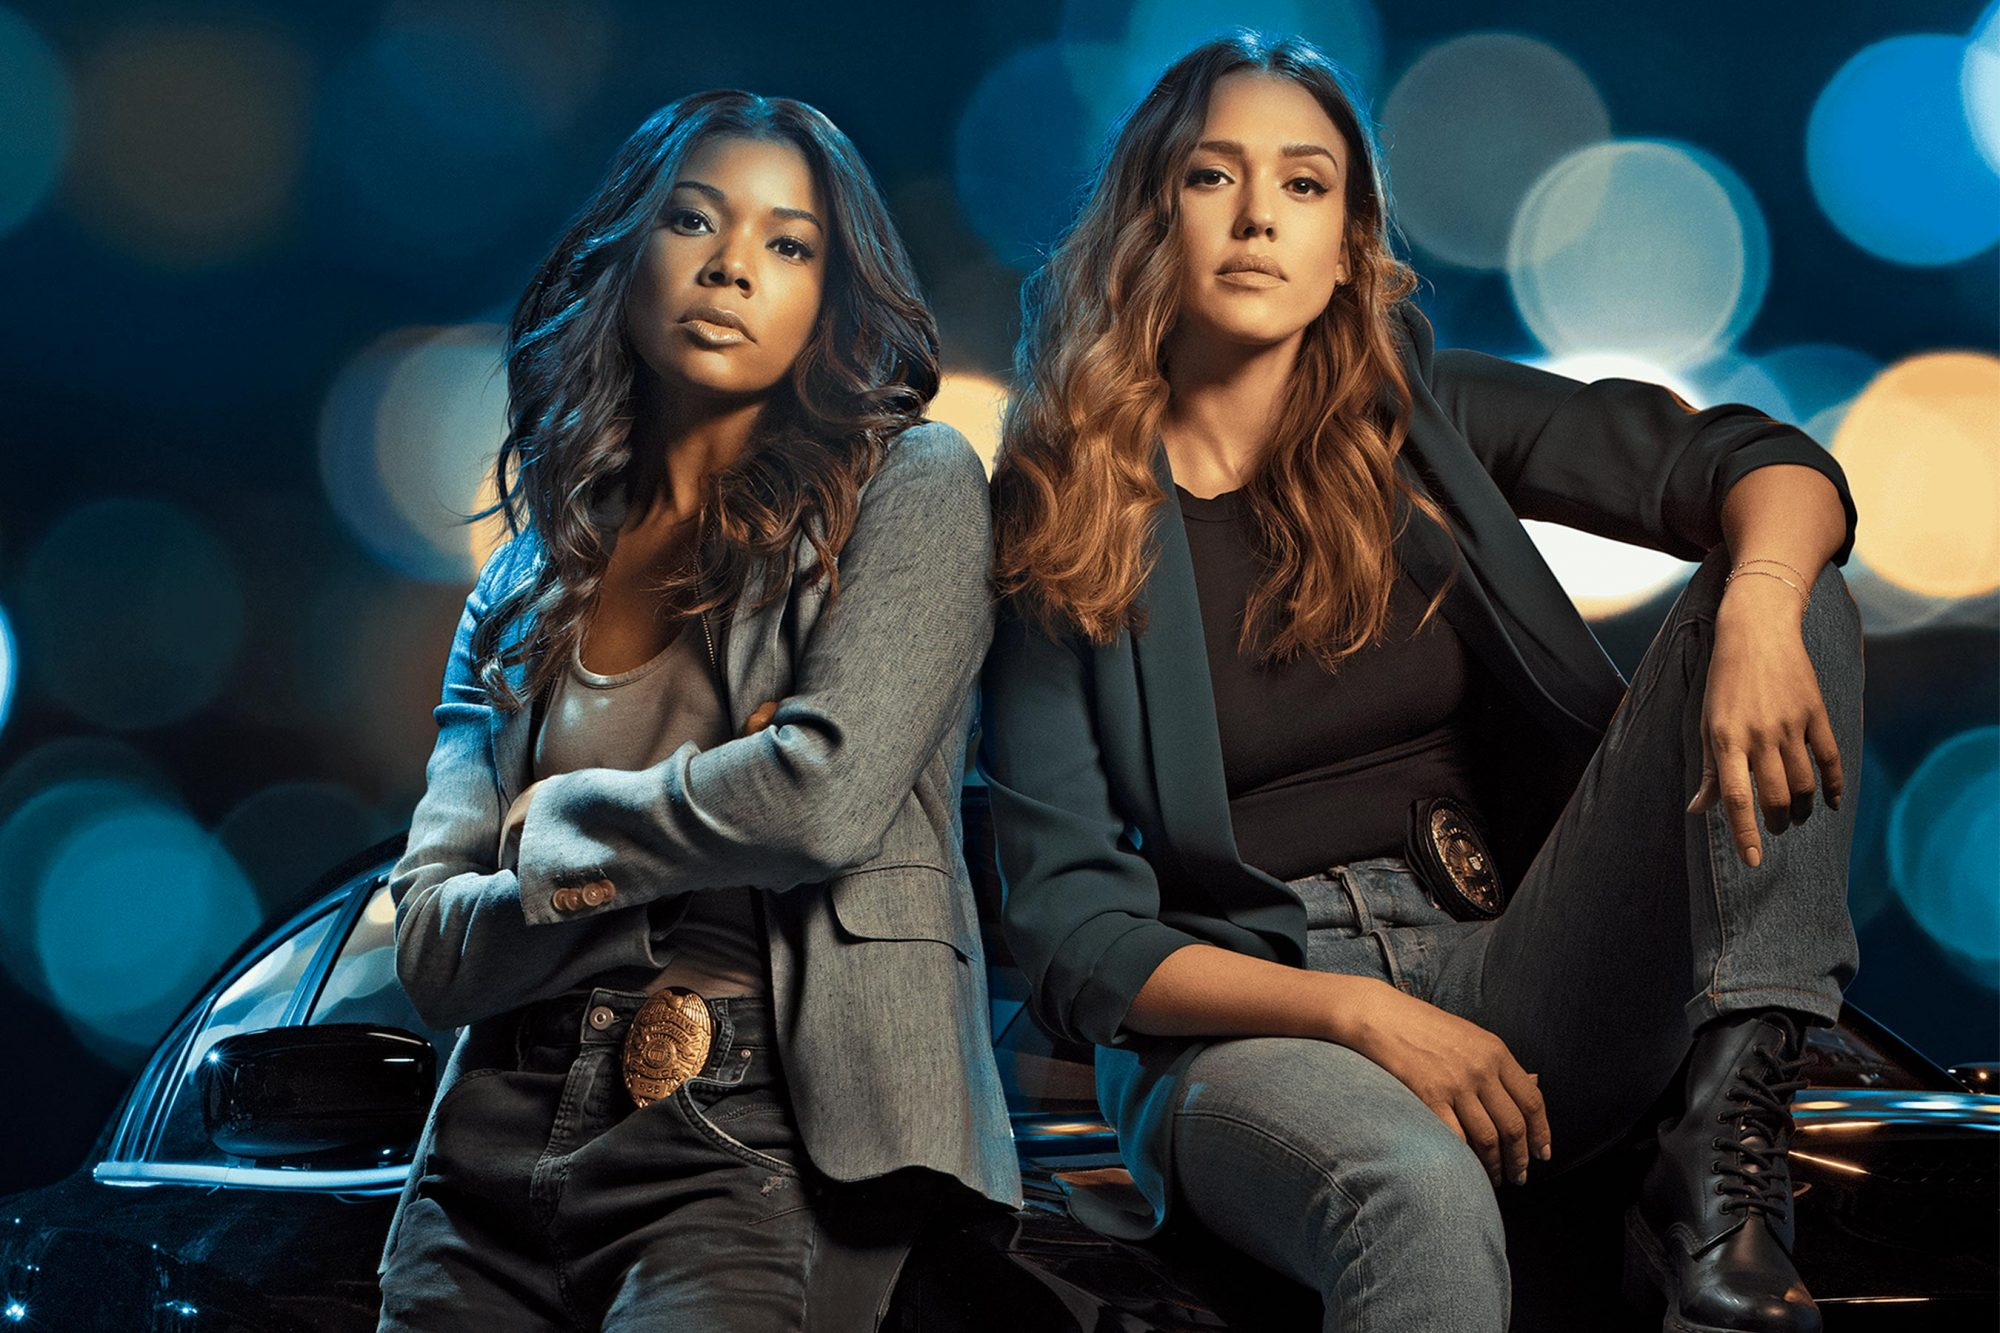 L.A.'S FINEST Gallery Gabrielle Union, Jessica Alba CR: Sony Pictures Television/Spectrum Originals